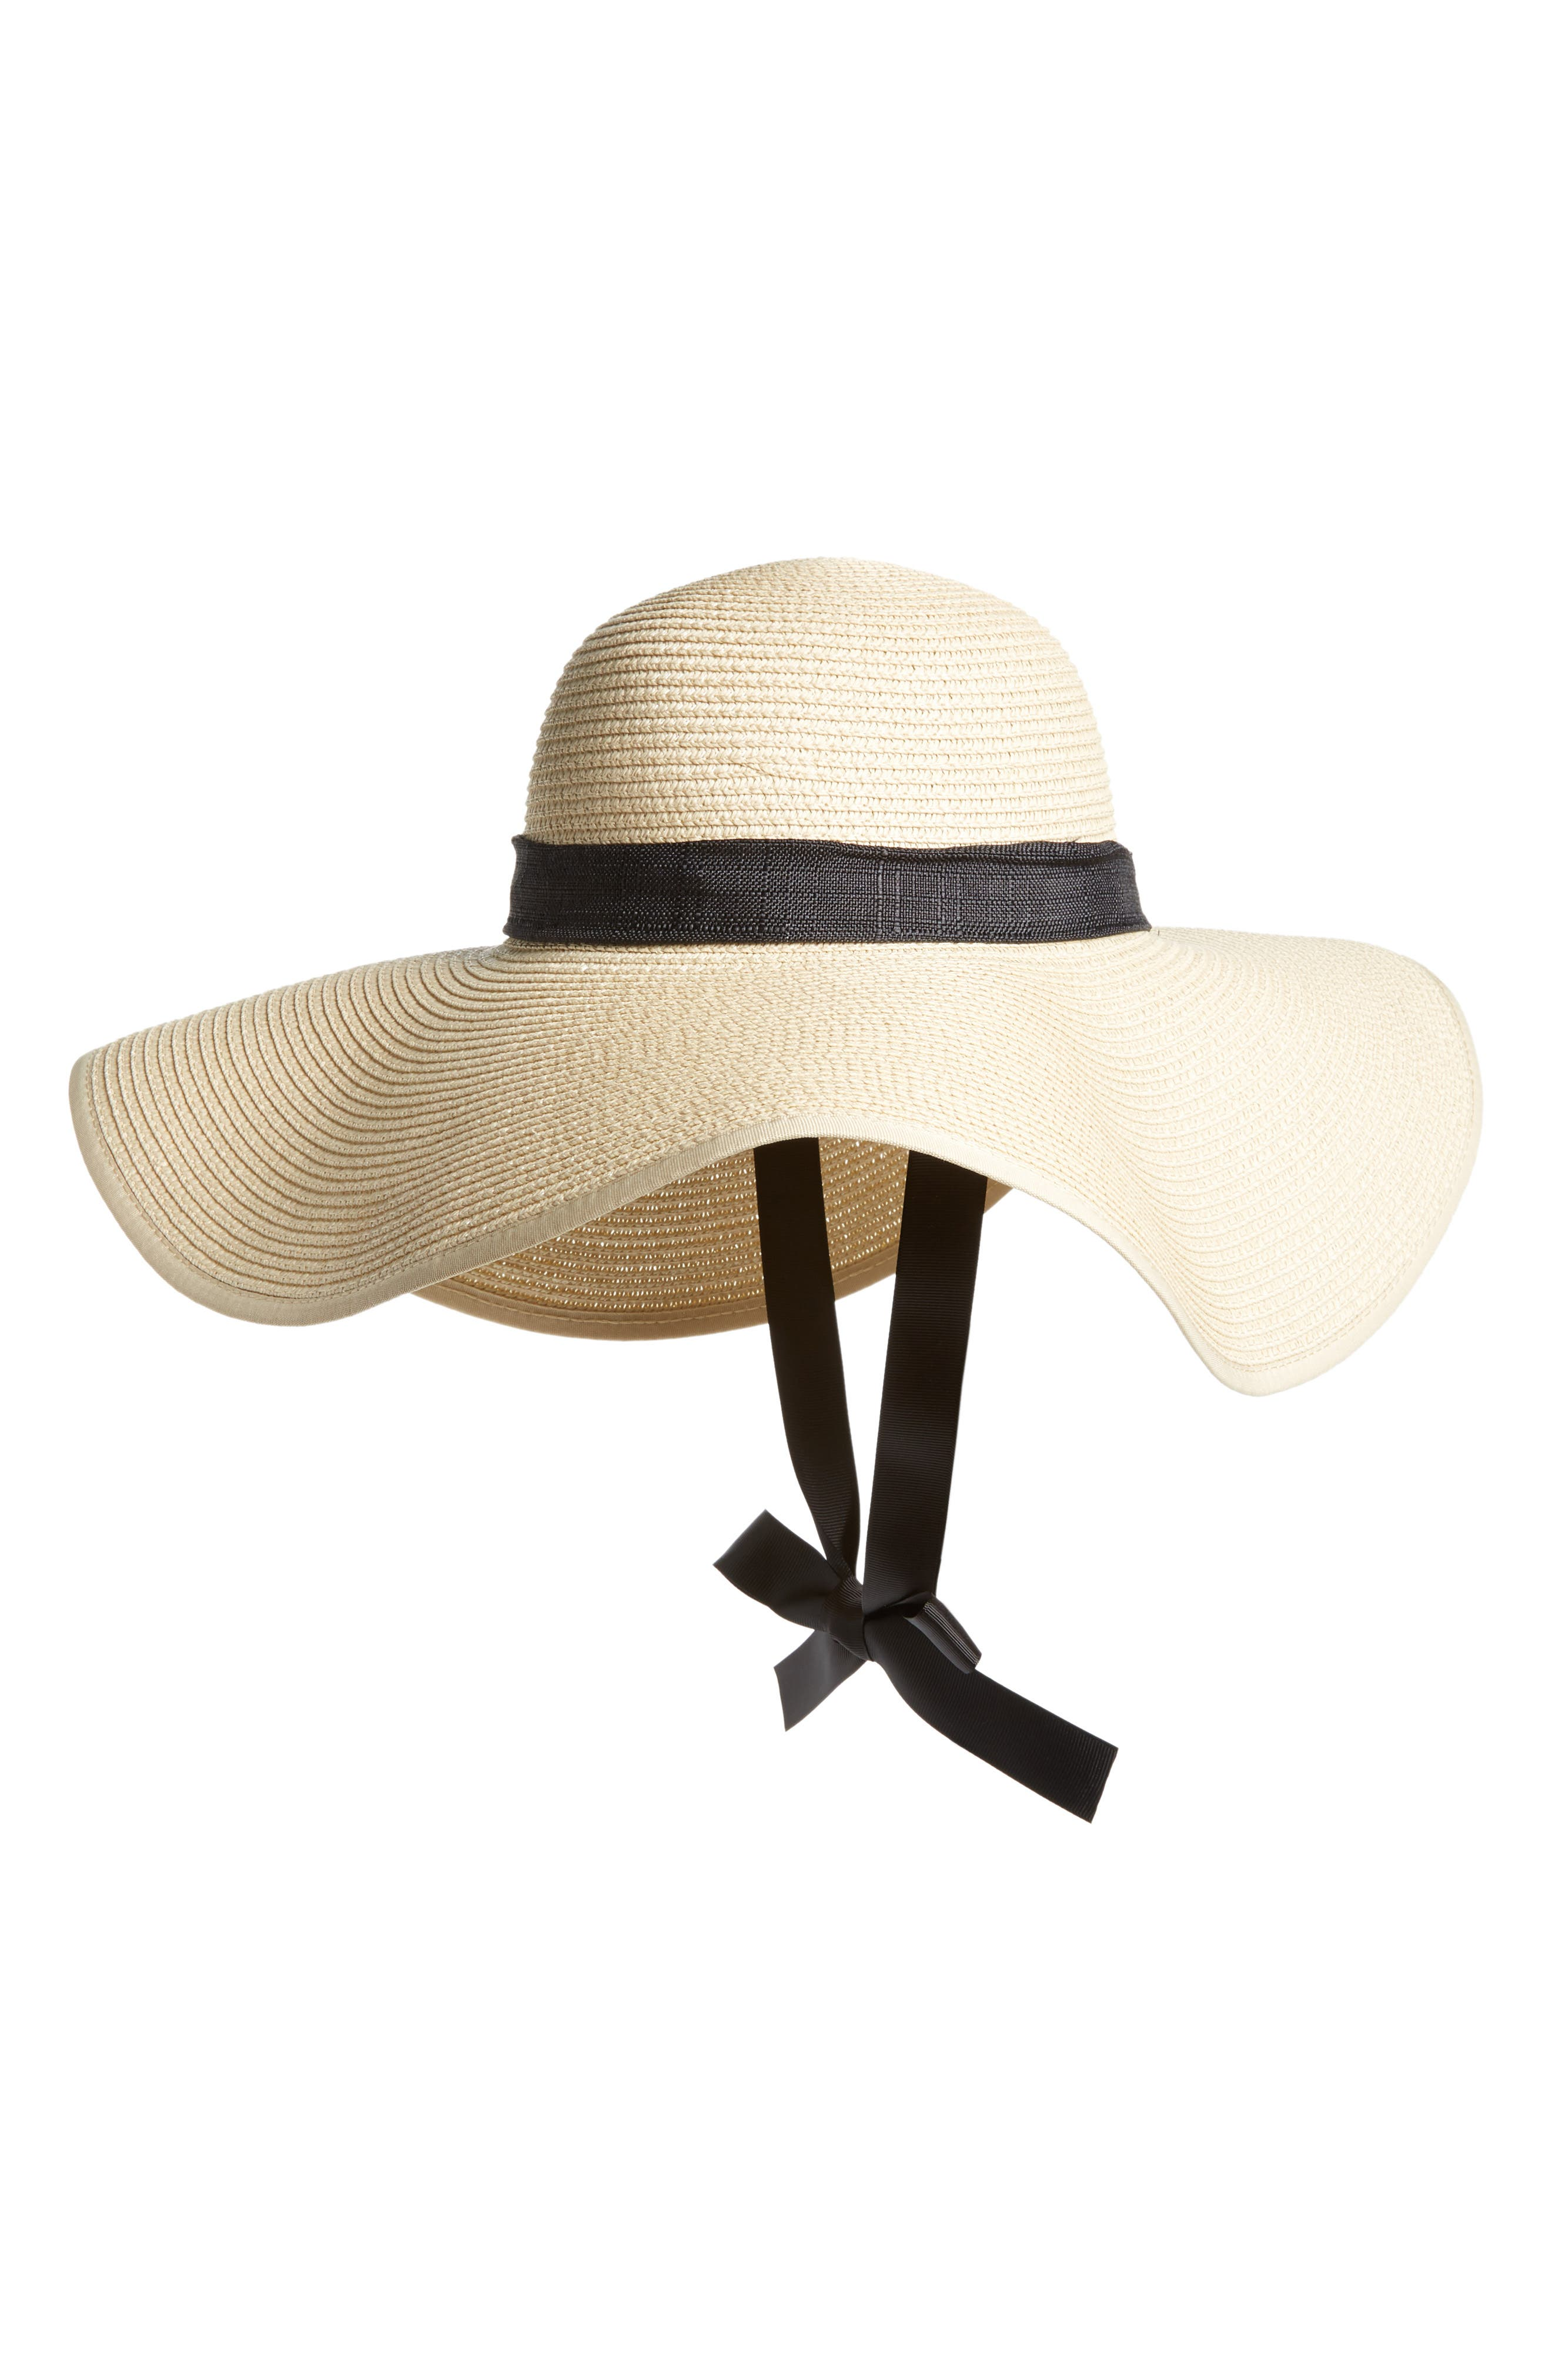 Tie Neck Ribbon Floppy Straw Hat,                         Main,                         color, 001